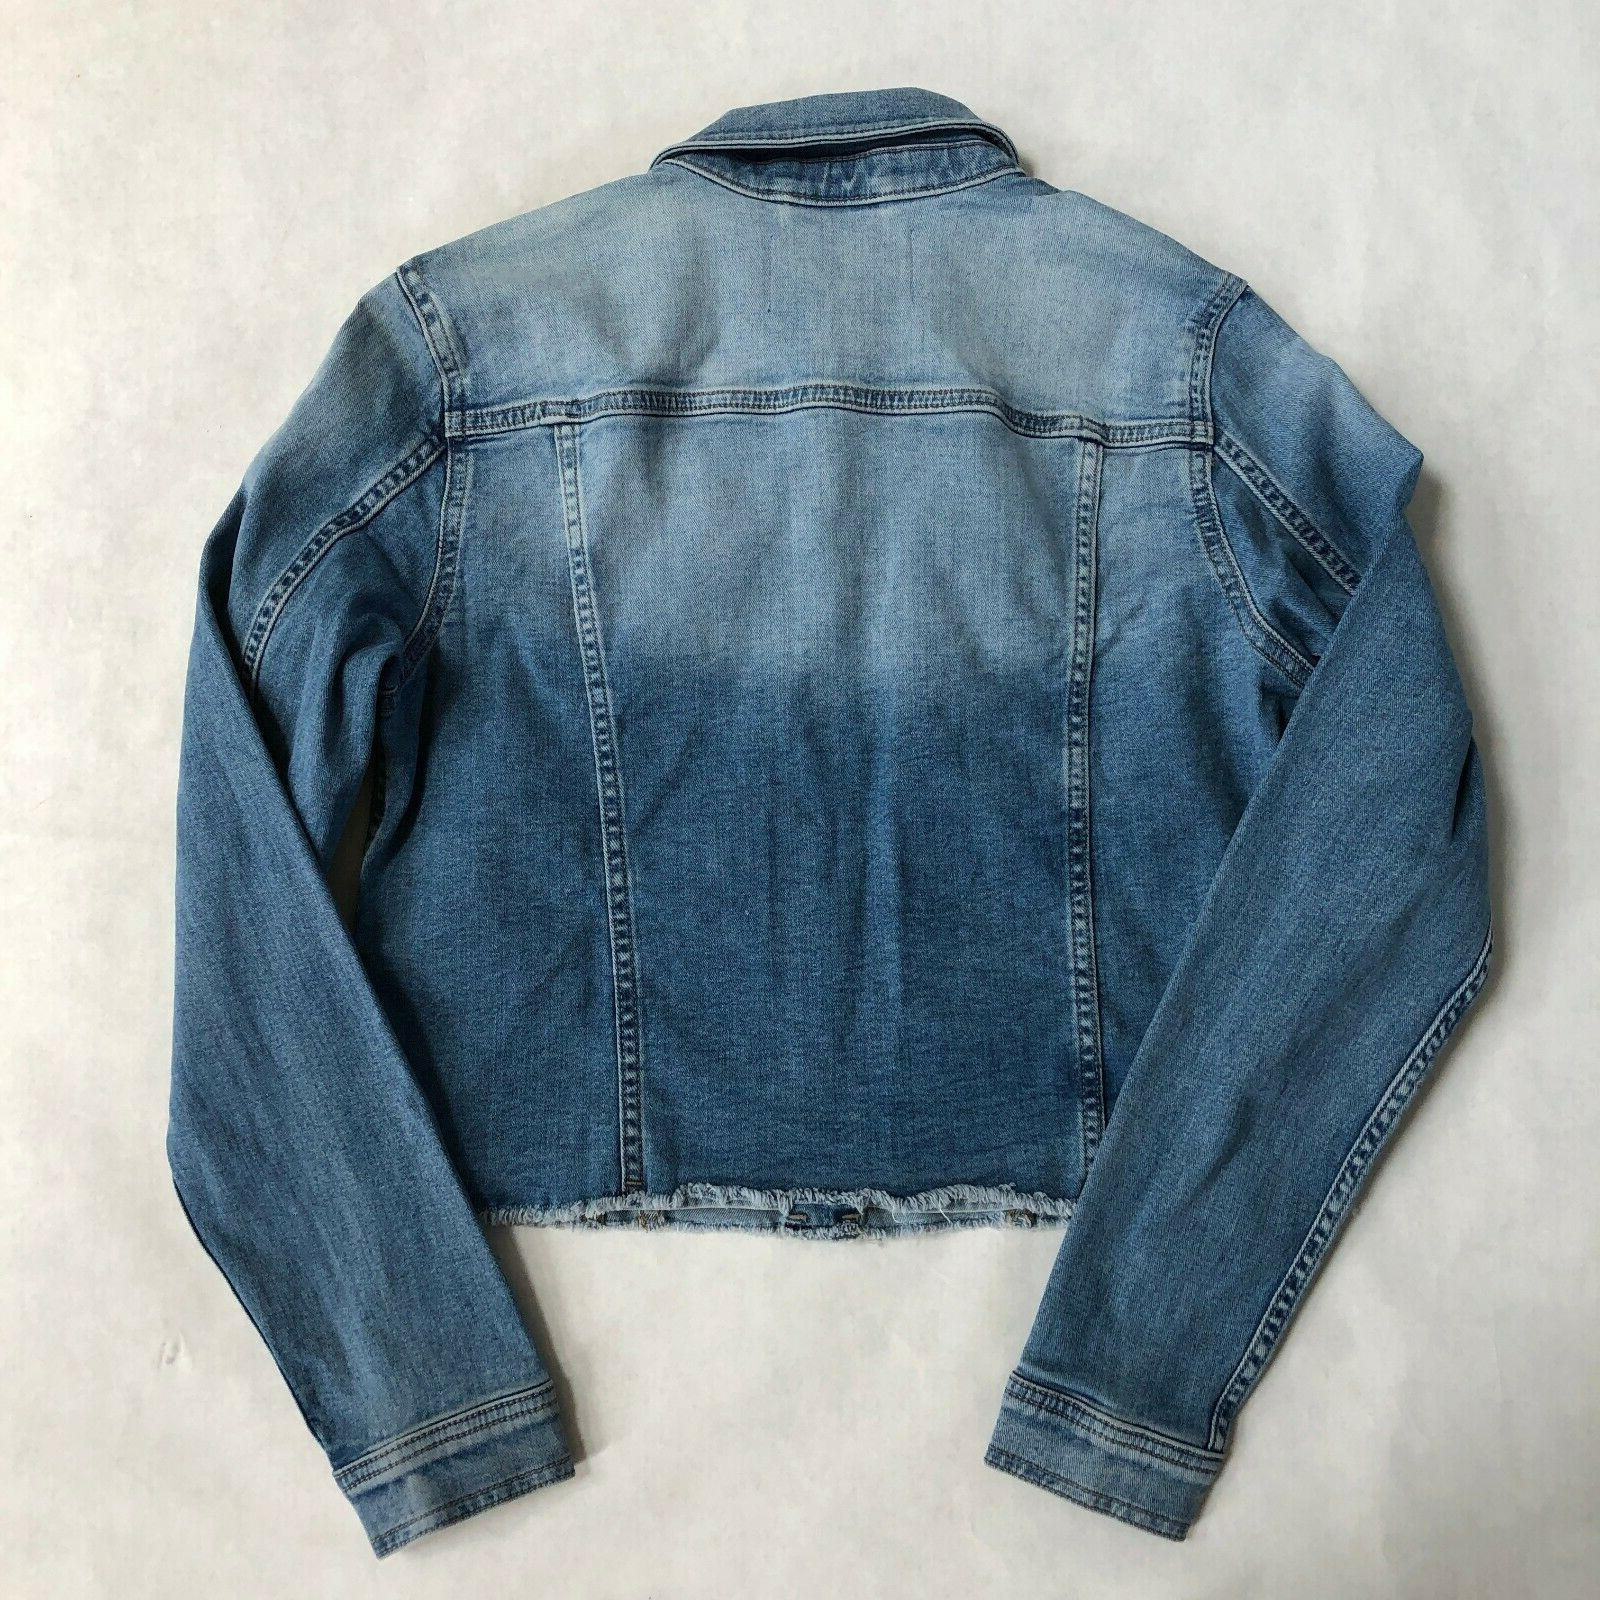 NWT Cotton Denim S L